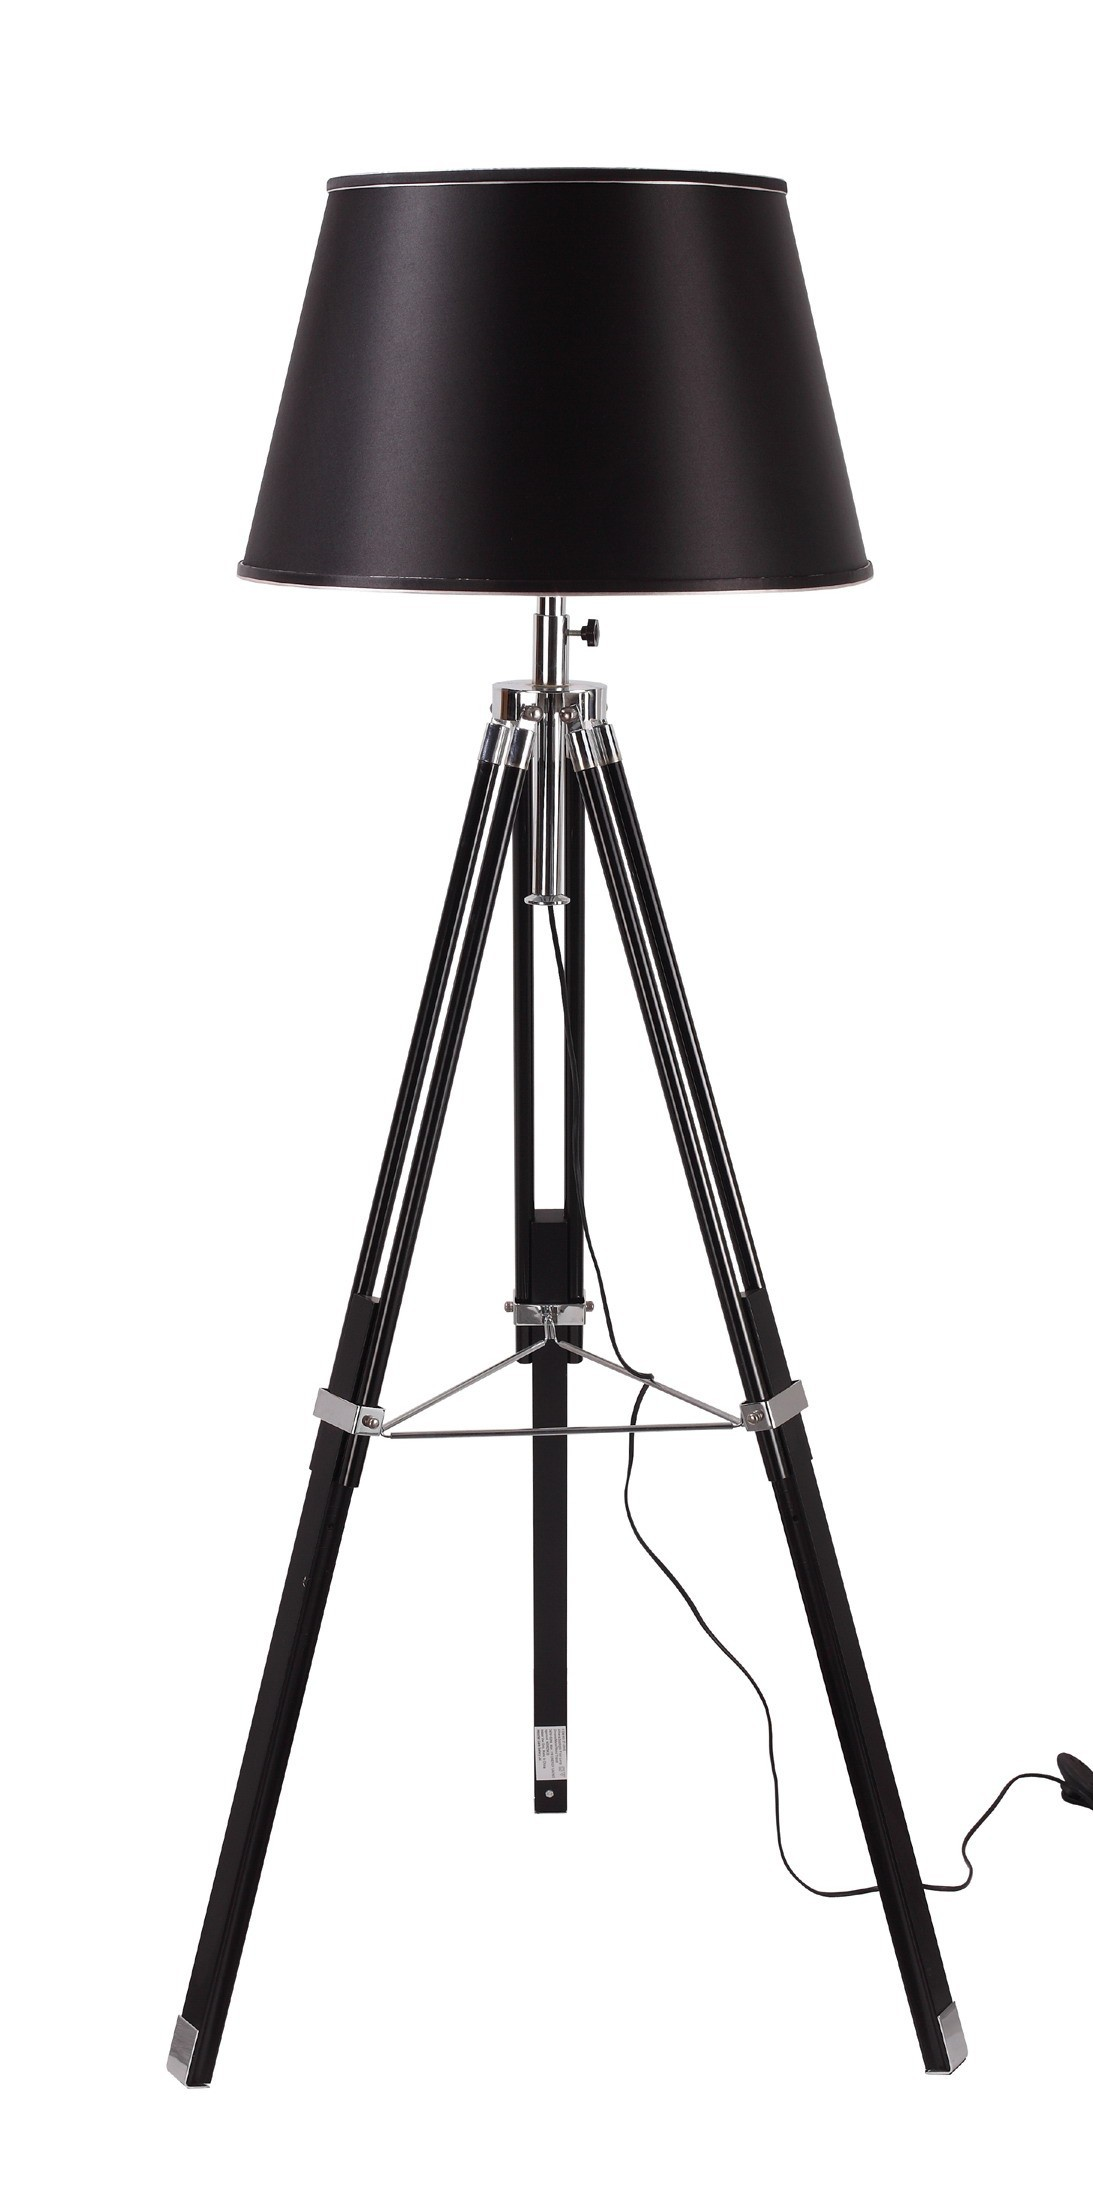 Tripod Floor Lamps Sale Tripod Floor Lamp